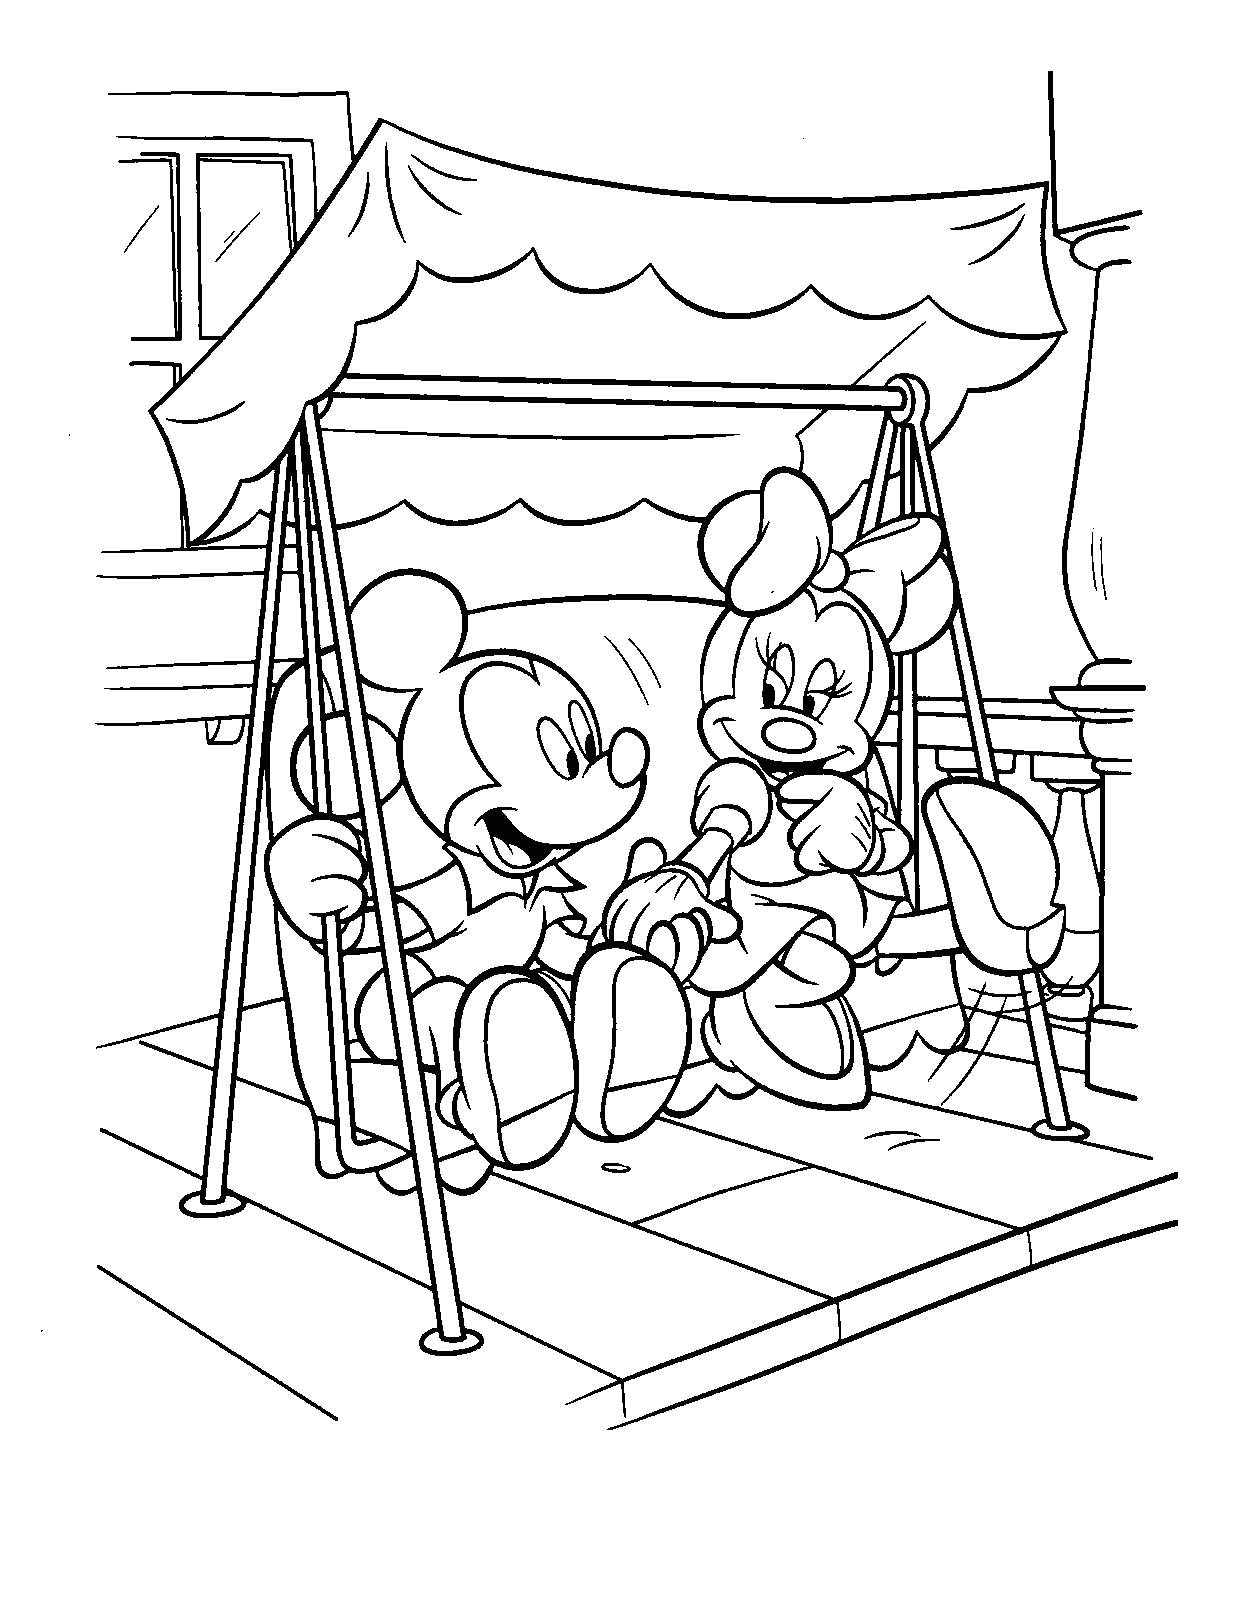 mickey mouse coloring for kids mickey mouse fireworks coloring pages for kids printable mickey mouse for kids coloring